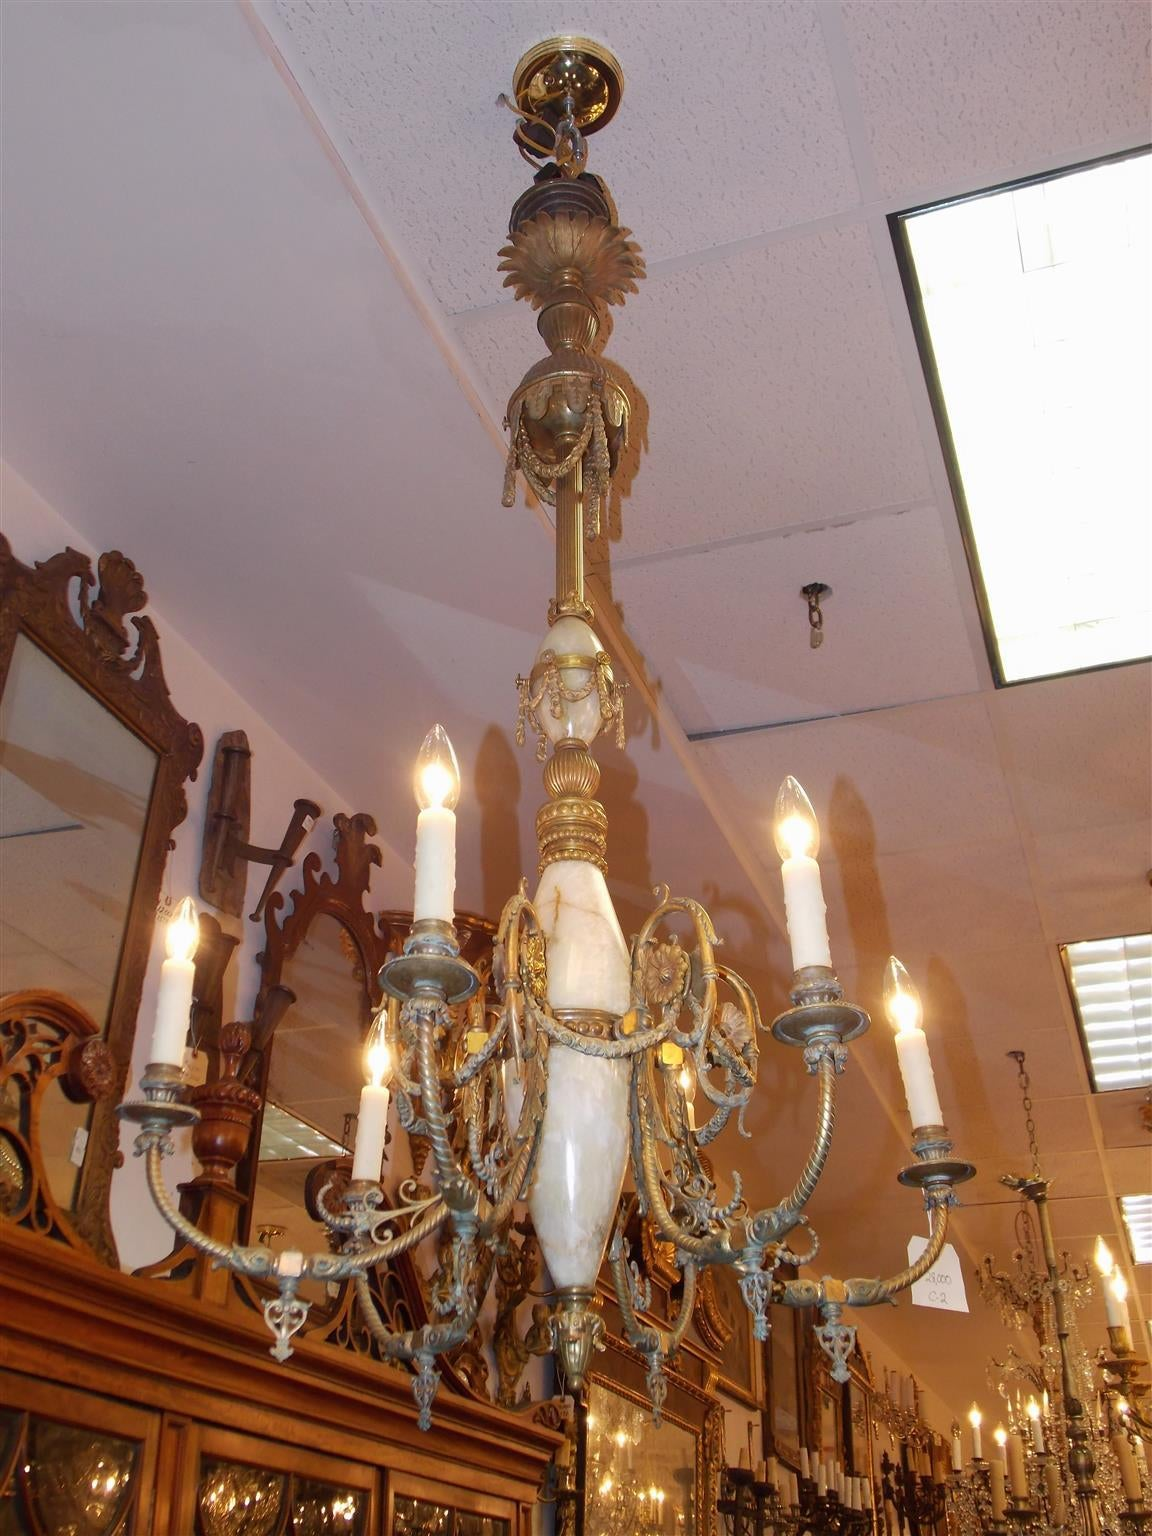 Italian gilt bronze and onyx chandelier circa 1840 for sale at 1stdibs neoclassical italian gilt bronze and onyx chandelier circa 1840 for sale arubaitofo Gallery